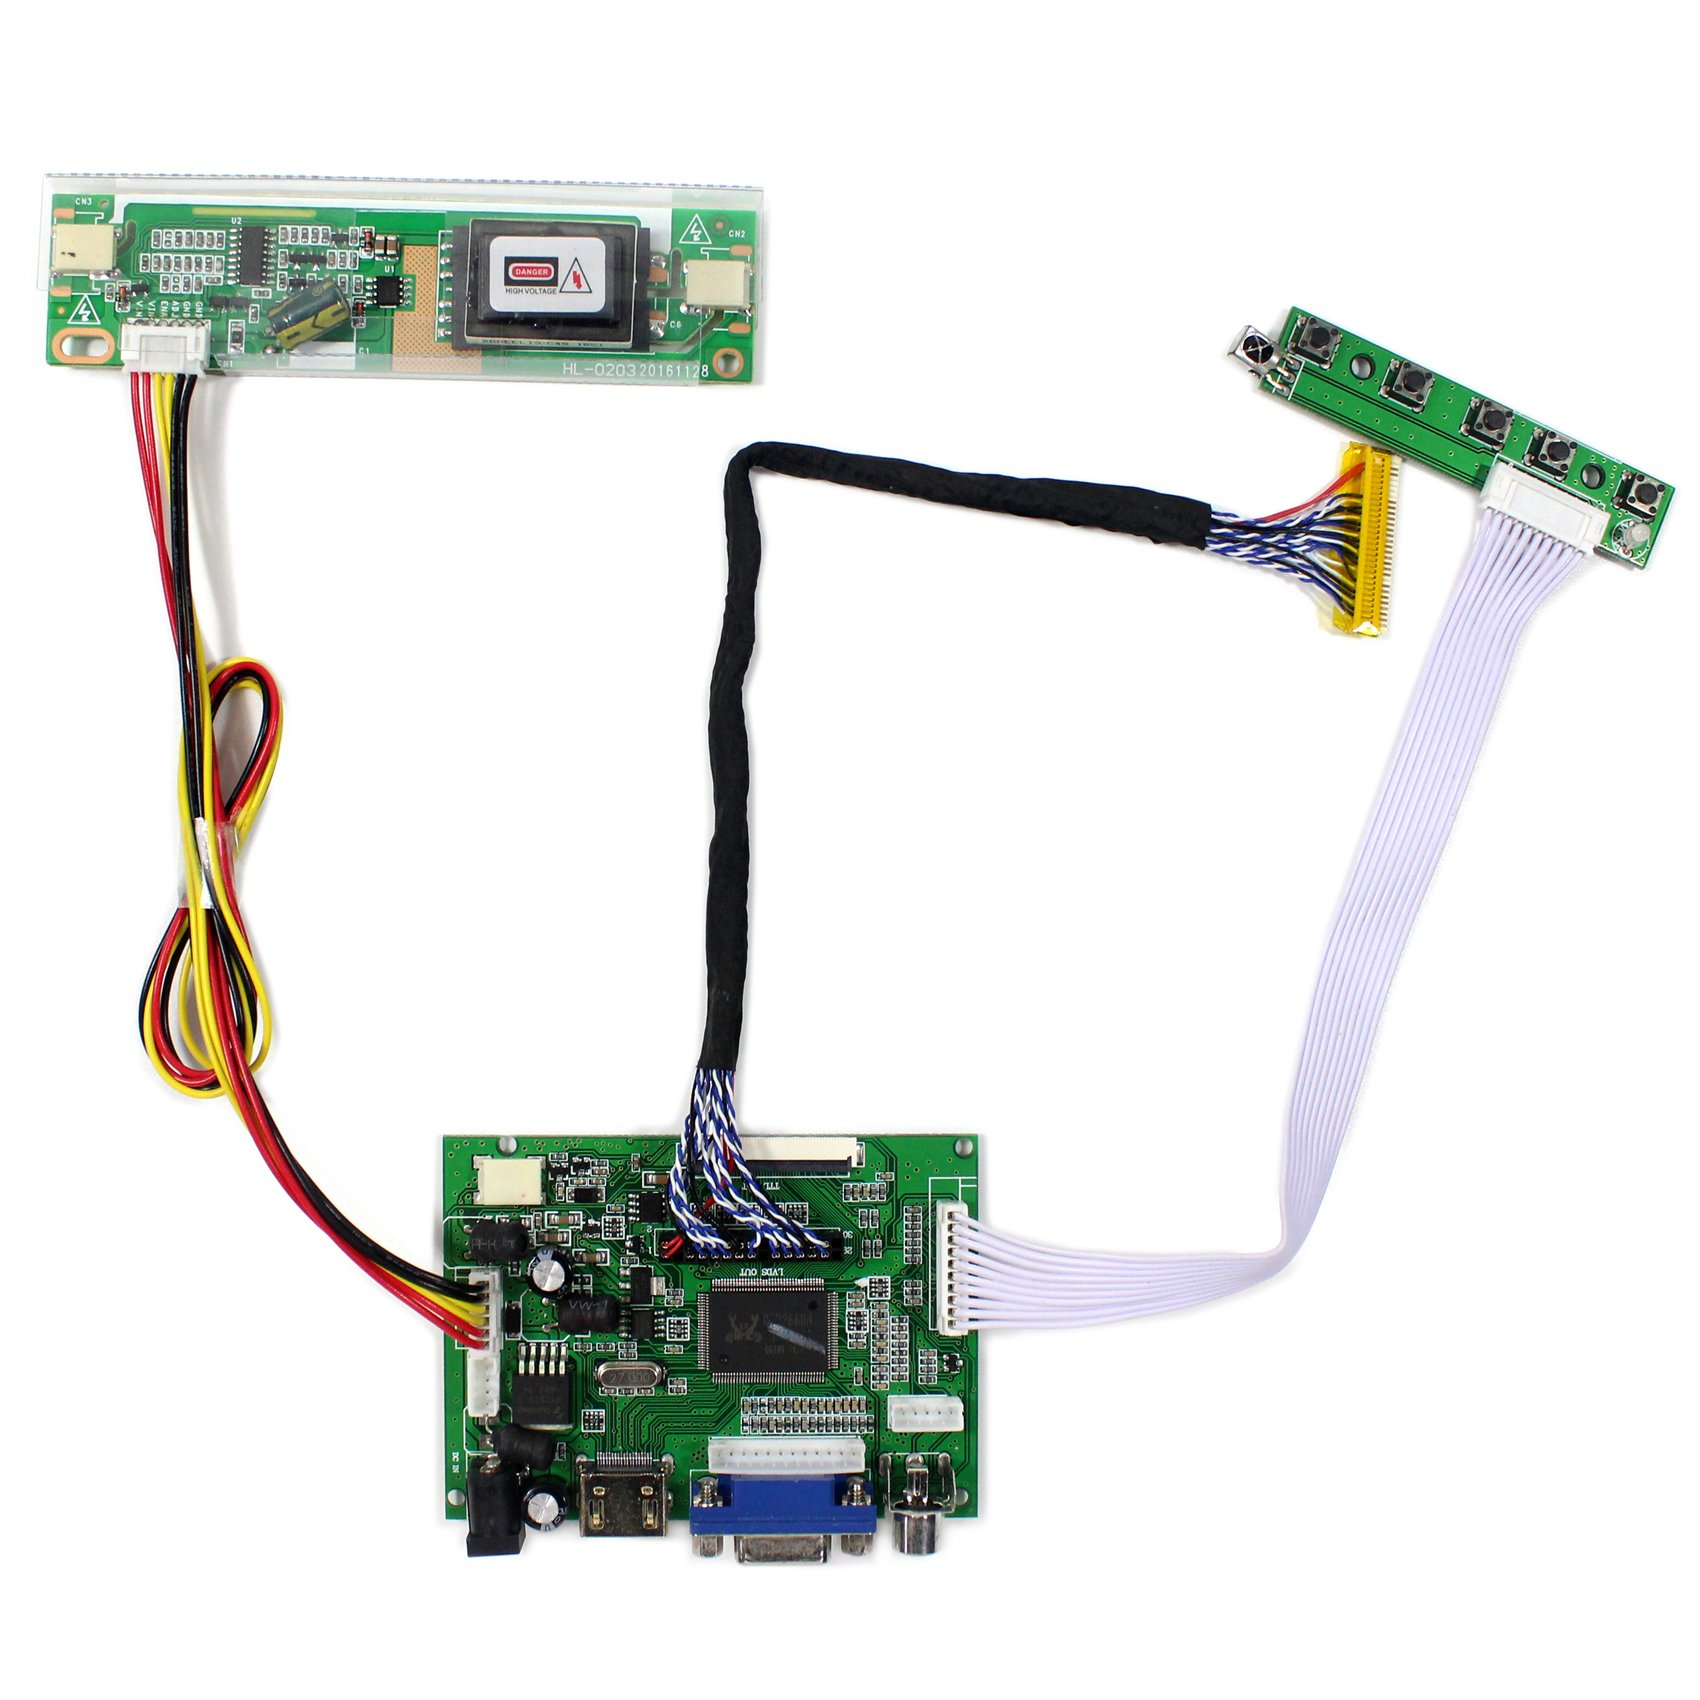 HDMI+VGA+2AV Input LCD Controller Board For B170PW04 LM171W02-TLB2 17'' 1440x900 2CCFL 30Pins LCD Panel by LCDBOARD (Image #1)